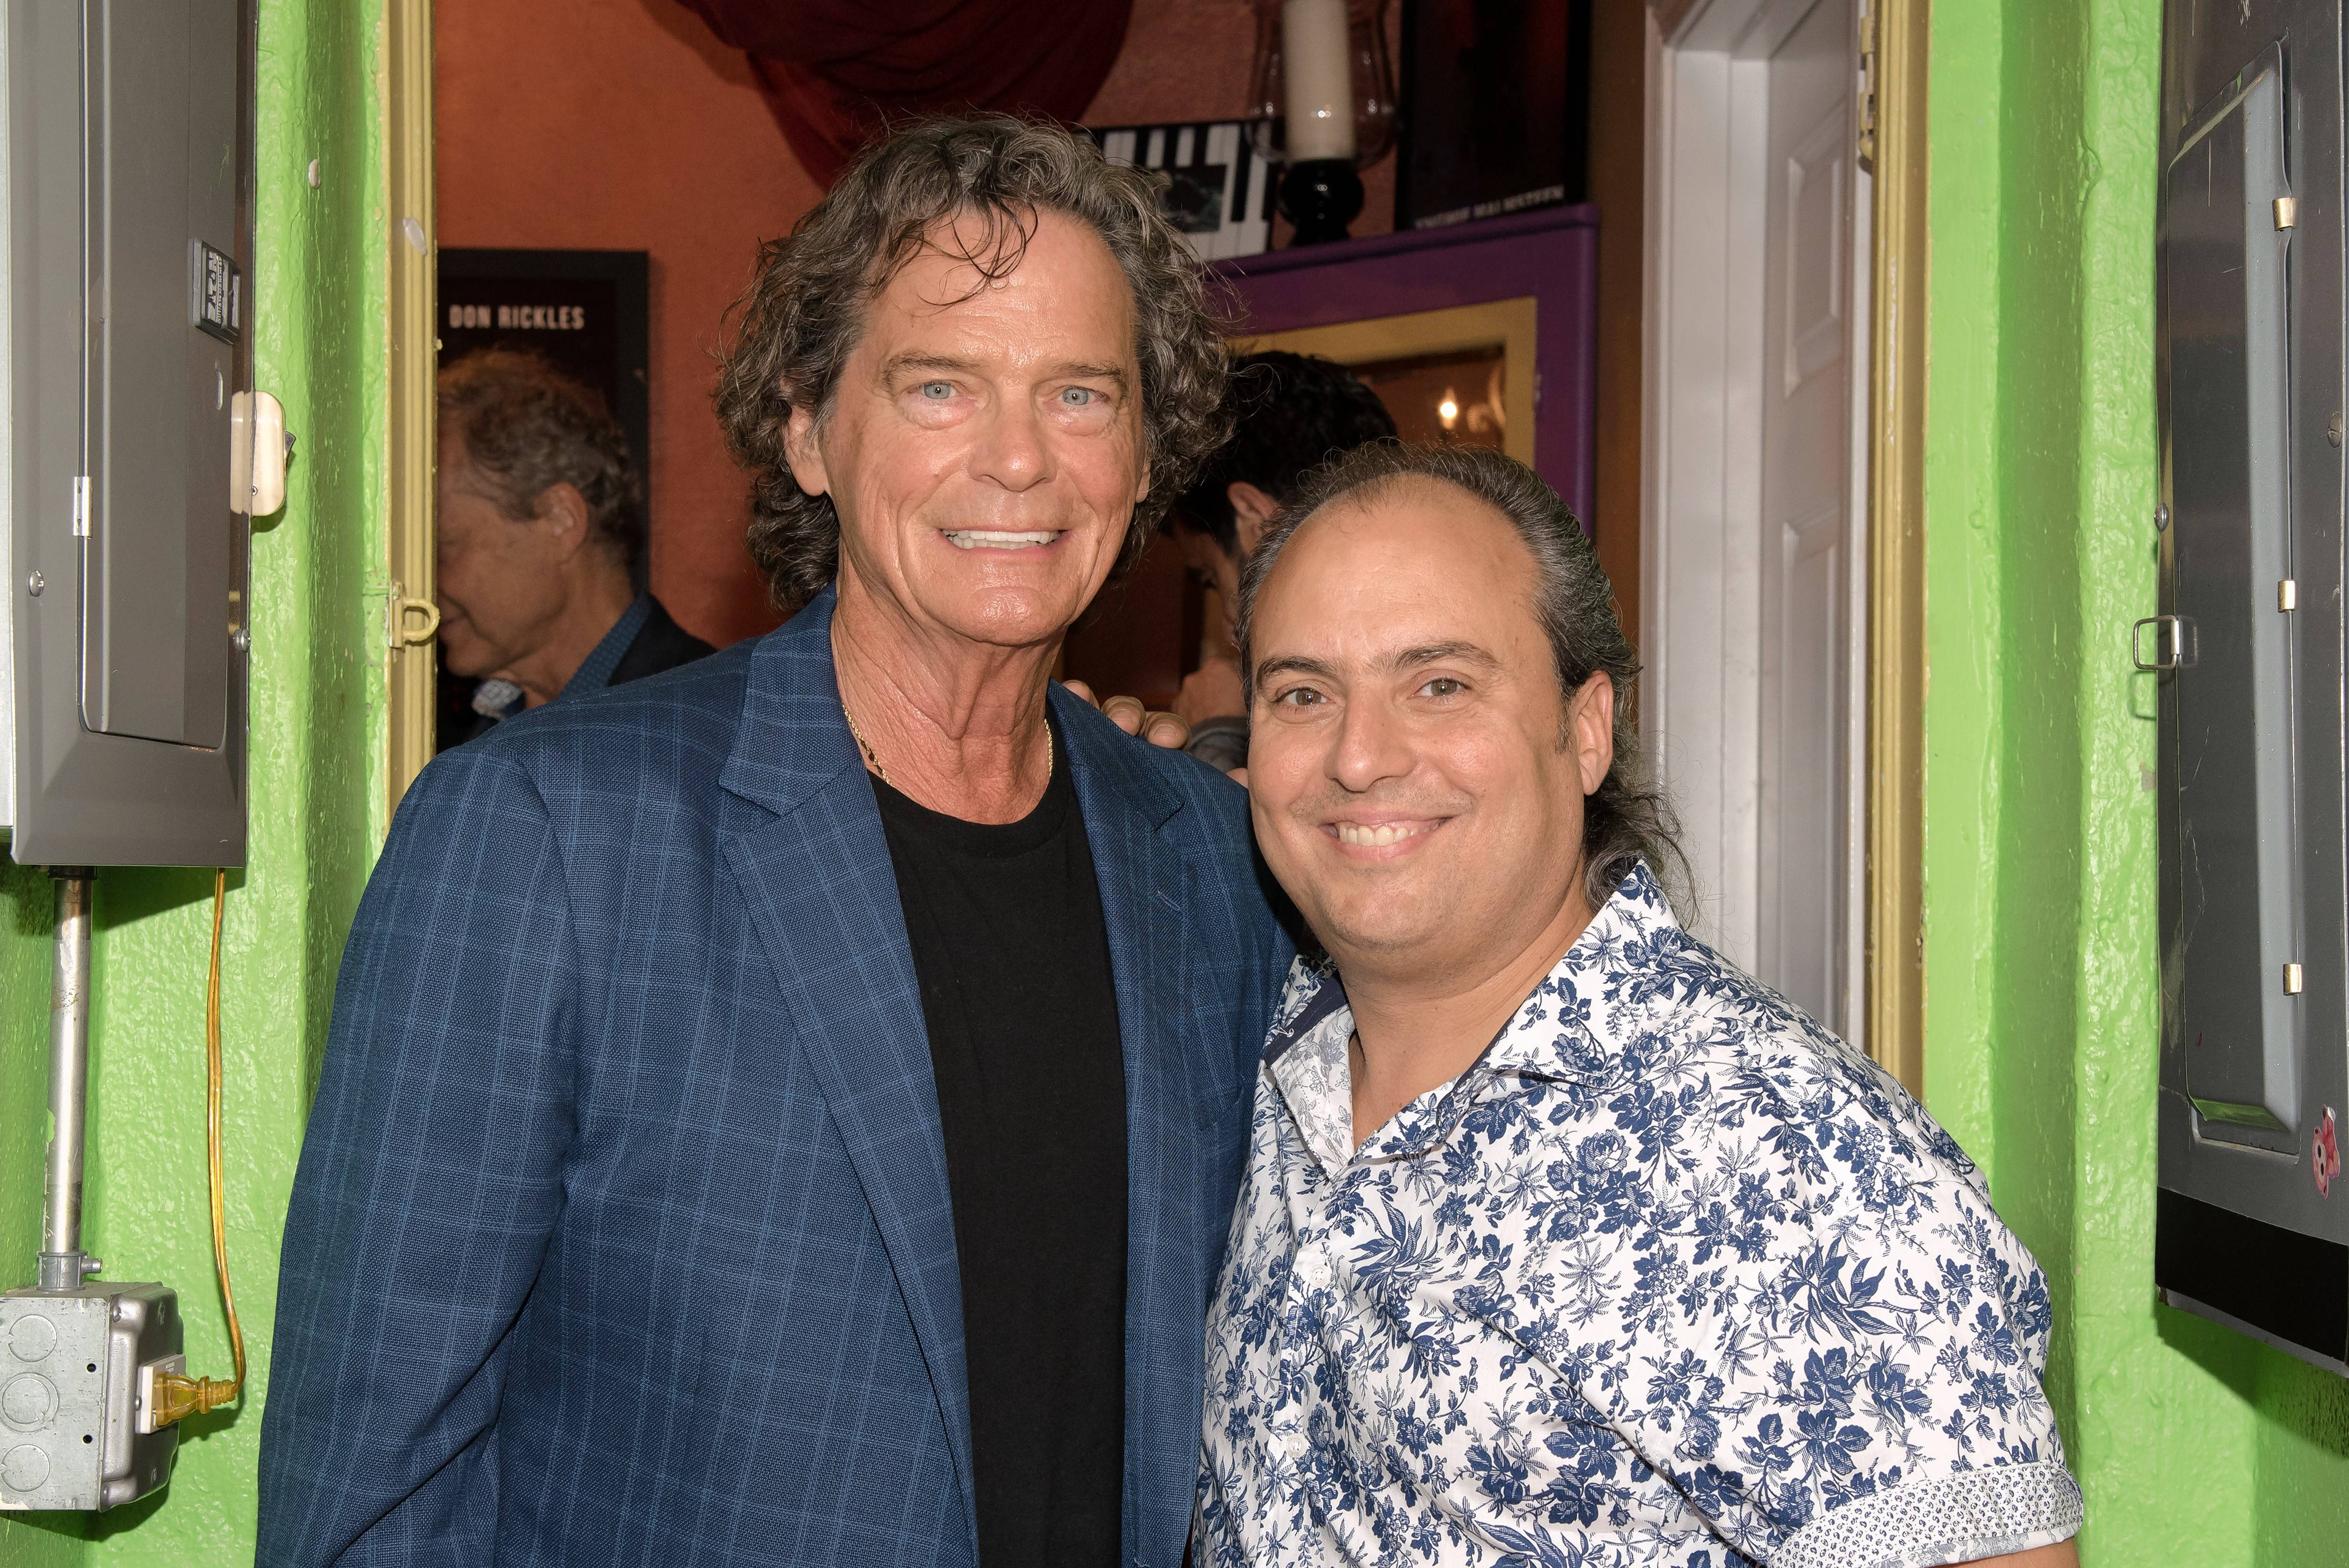 Singer B.J. Thomas, left, joined Arcada Theatre owner Ron Onesti last week and talked about his early influences in R&B music.